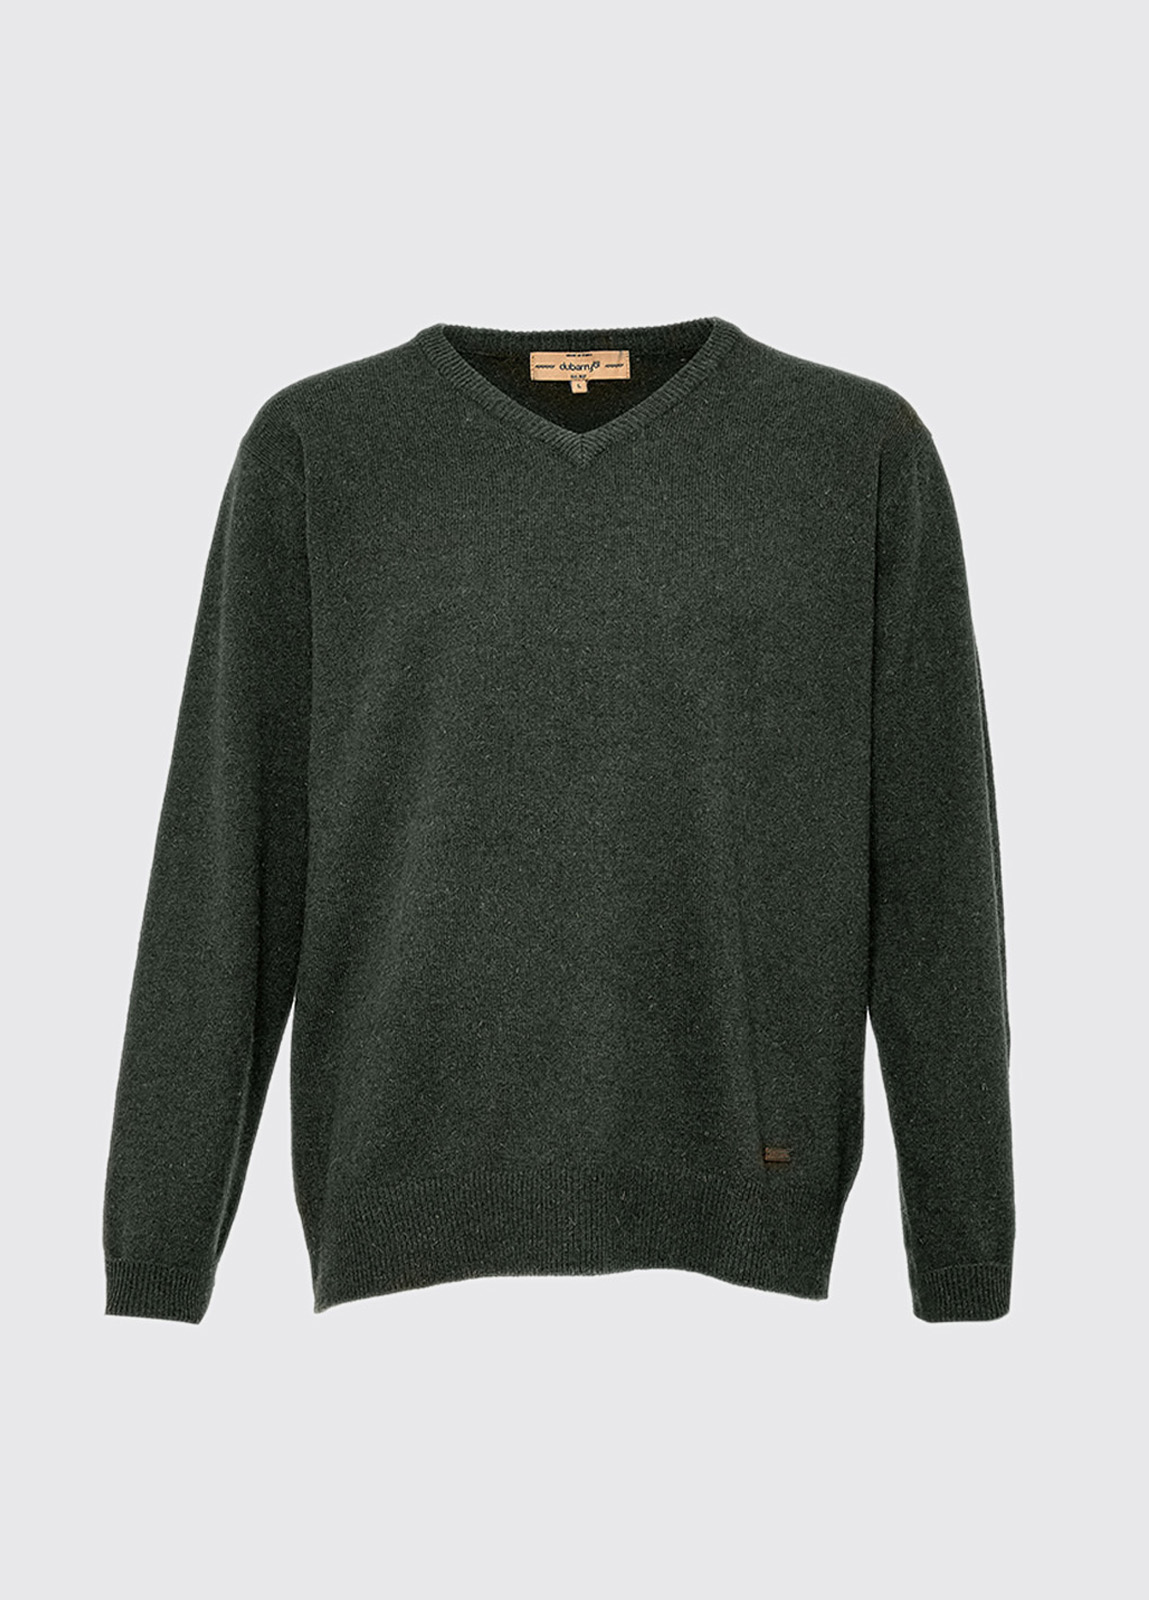 Kilduff V-Neck Sweater - Olive